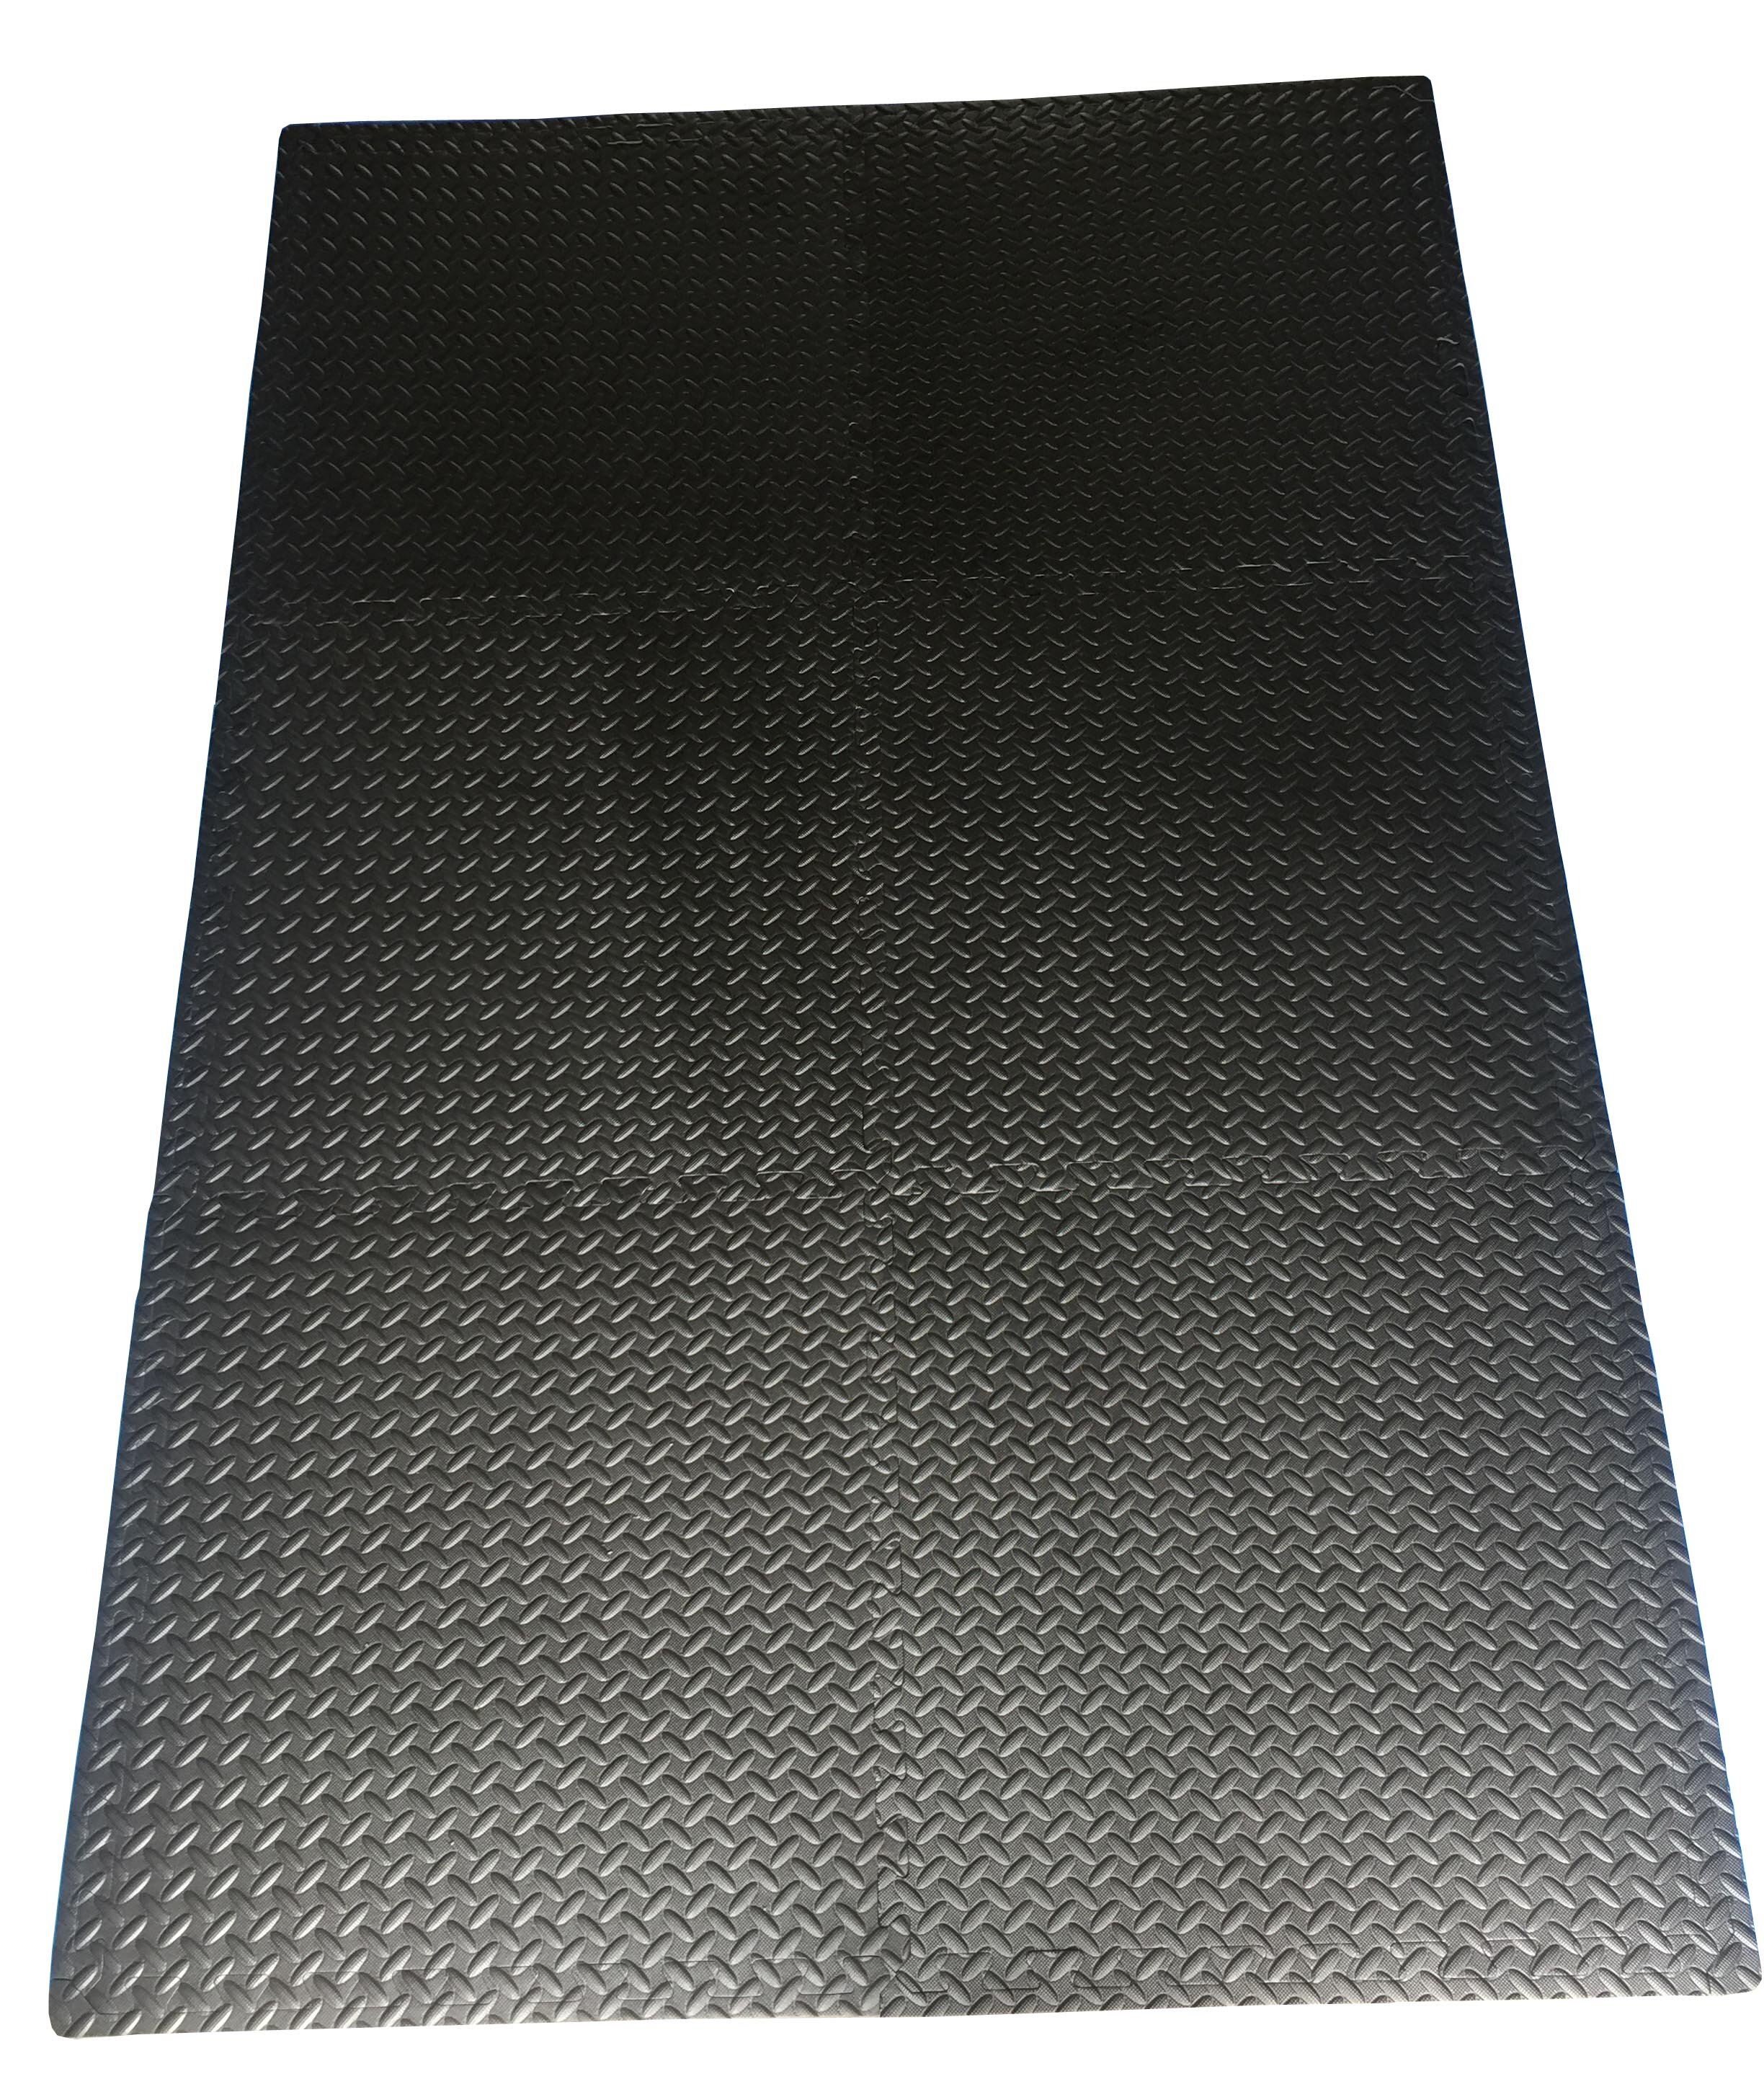 mats how to puzzle mat foam blog wash tag abc